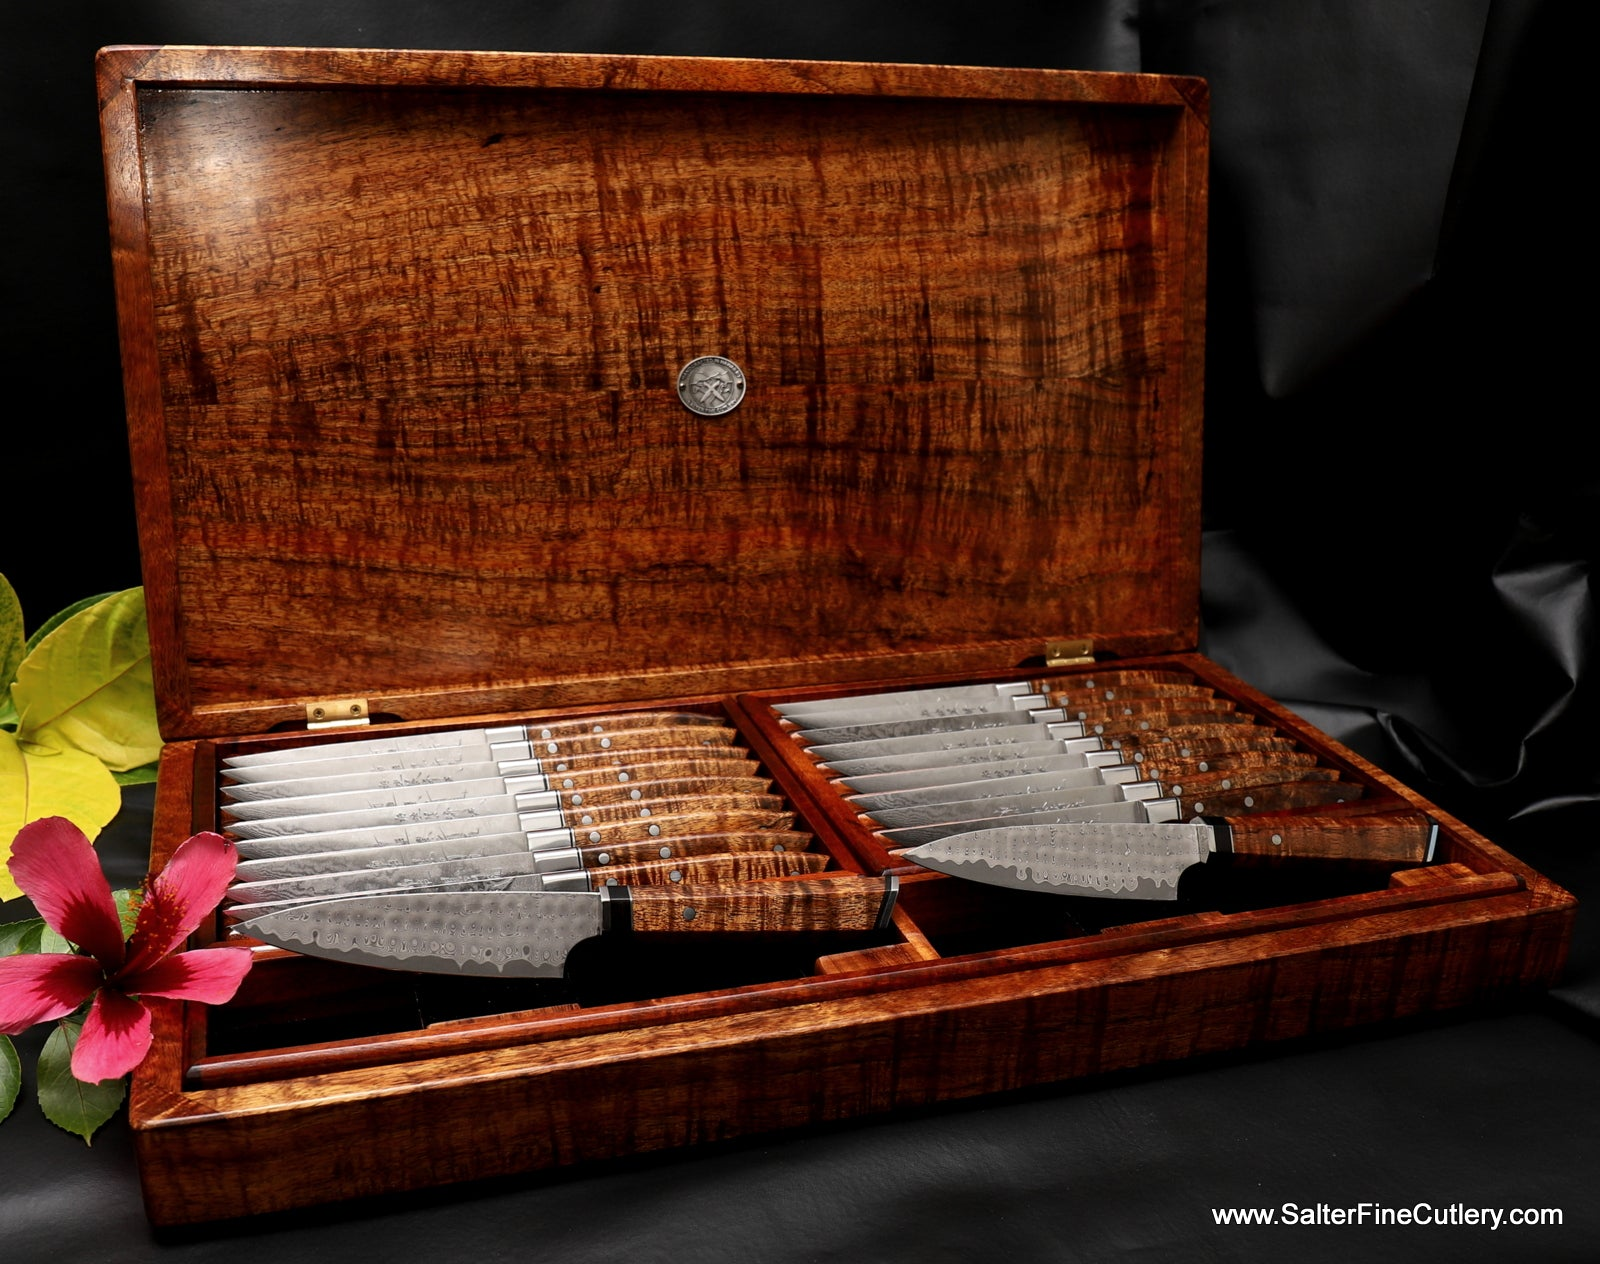 20-piece custom steak knife set in presentation box by Salter Fine Cutlery